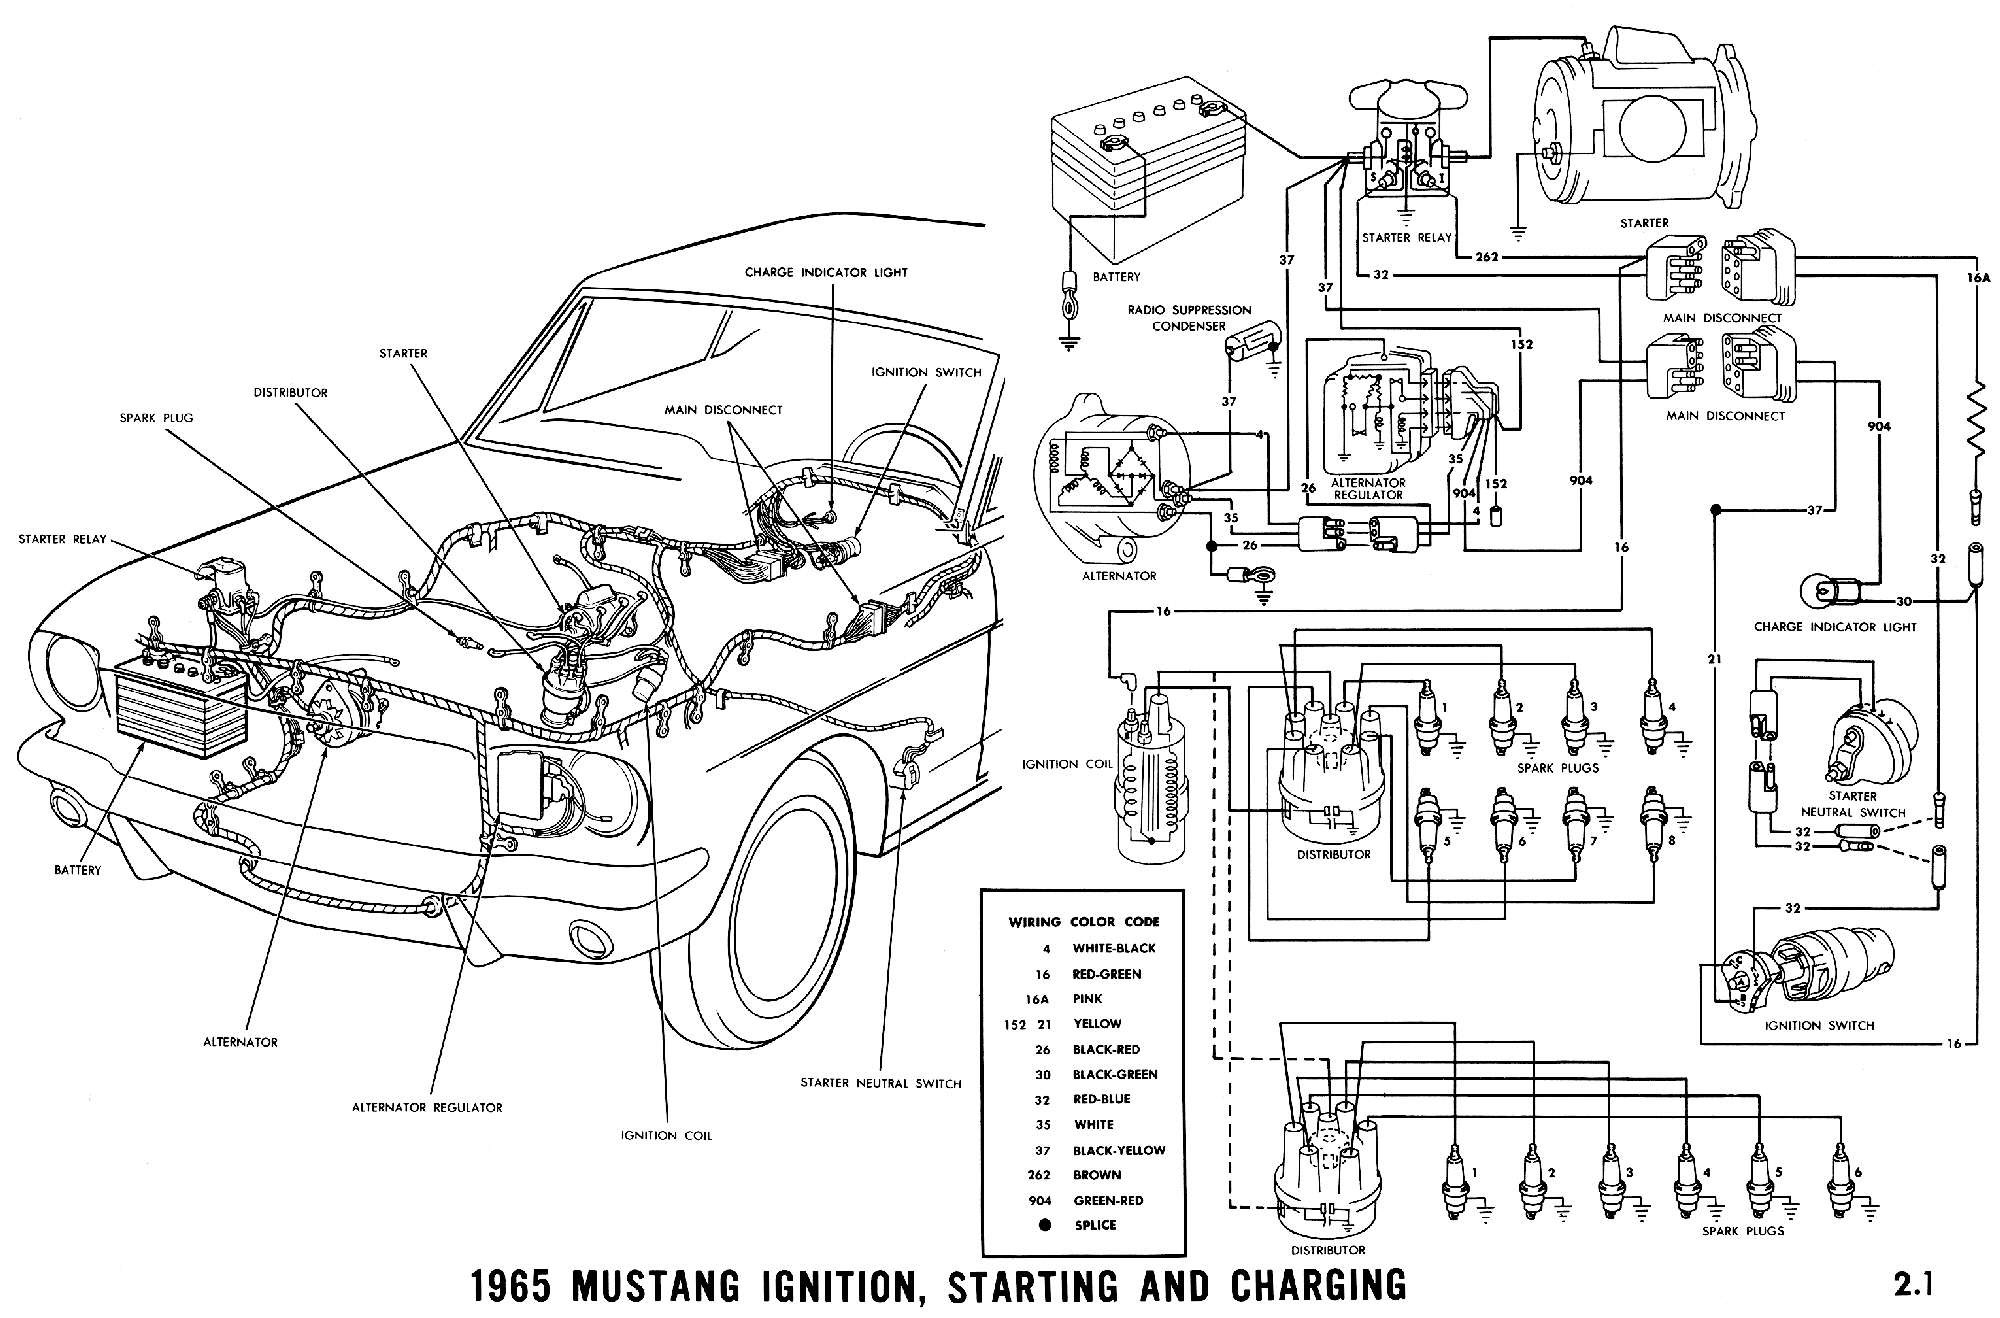 2000 Mustang Engine Diagram 1996 ford F 350 Wiring Wiring